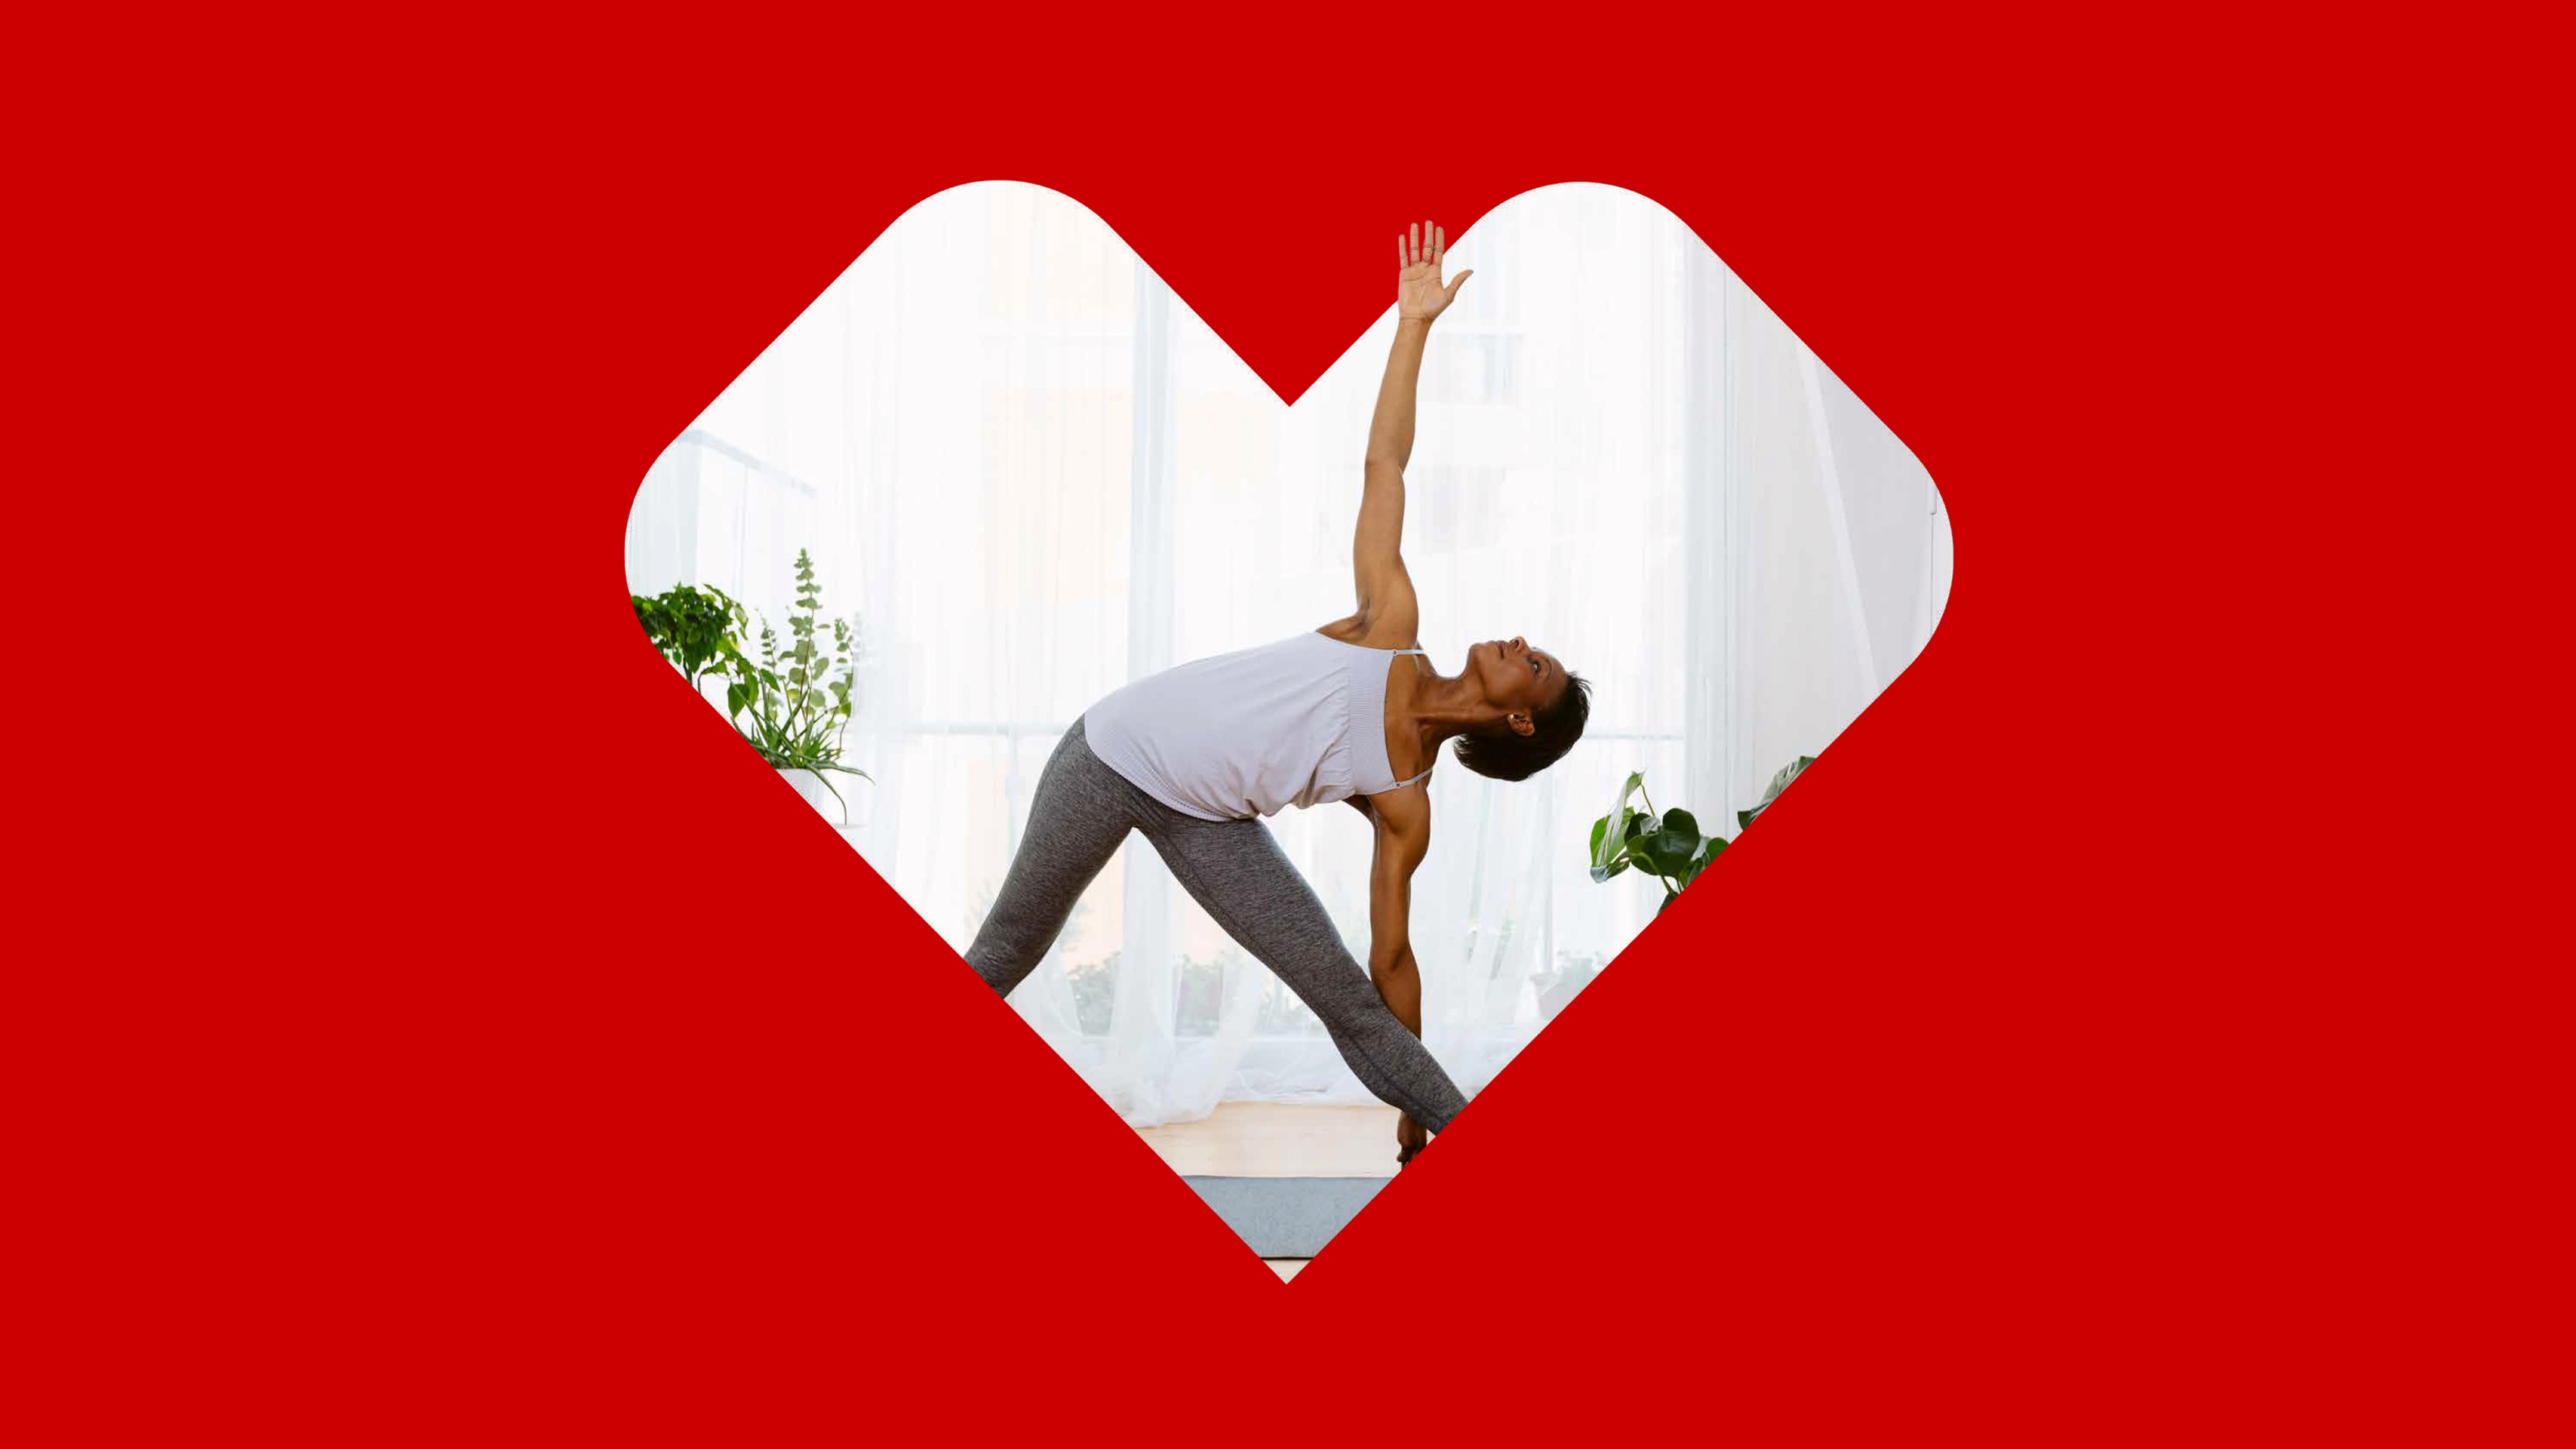 A woman in gray athletic clothes stretches and practices yoga poses in a very light and bright room. The photo is set inside of a CVS Health® heart on a red background.